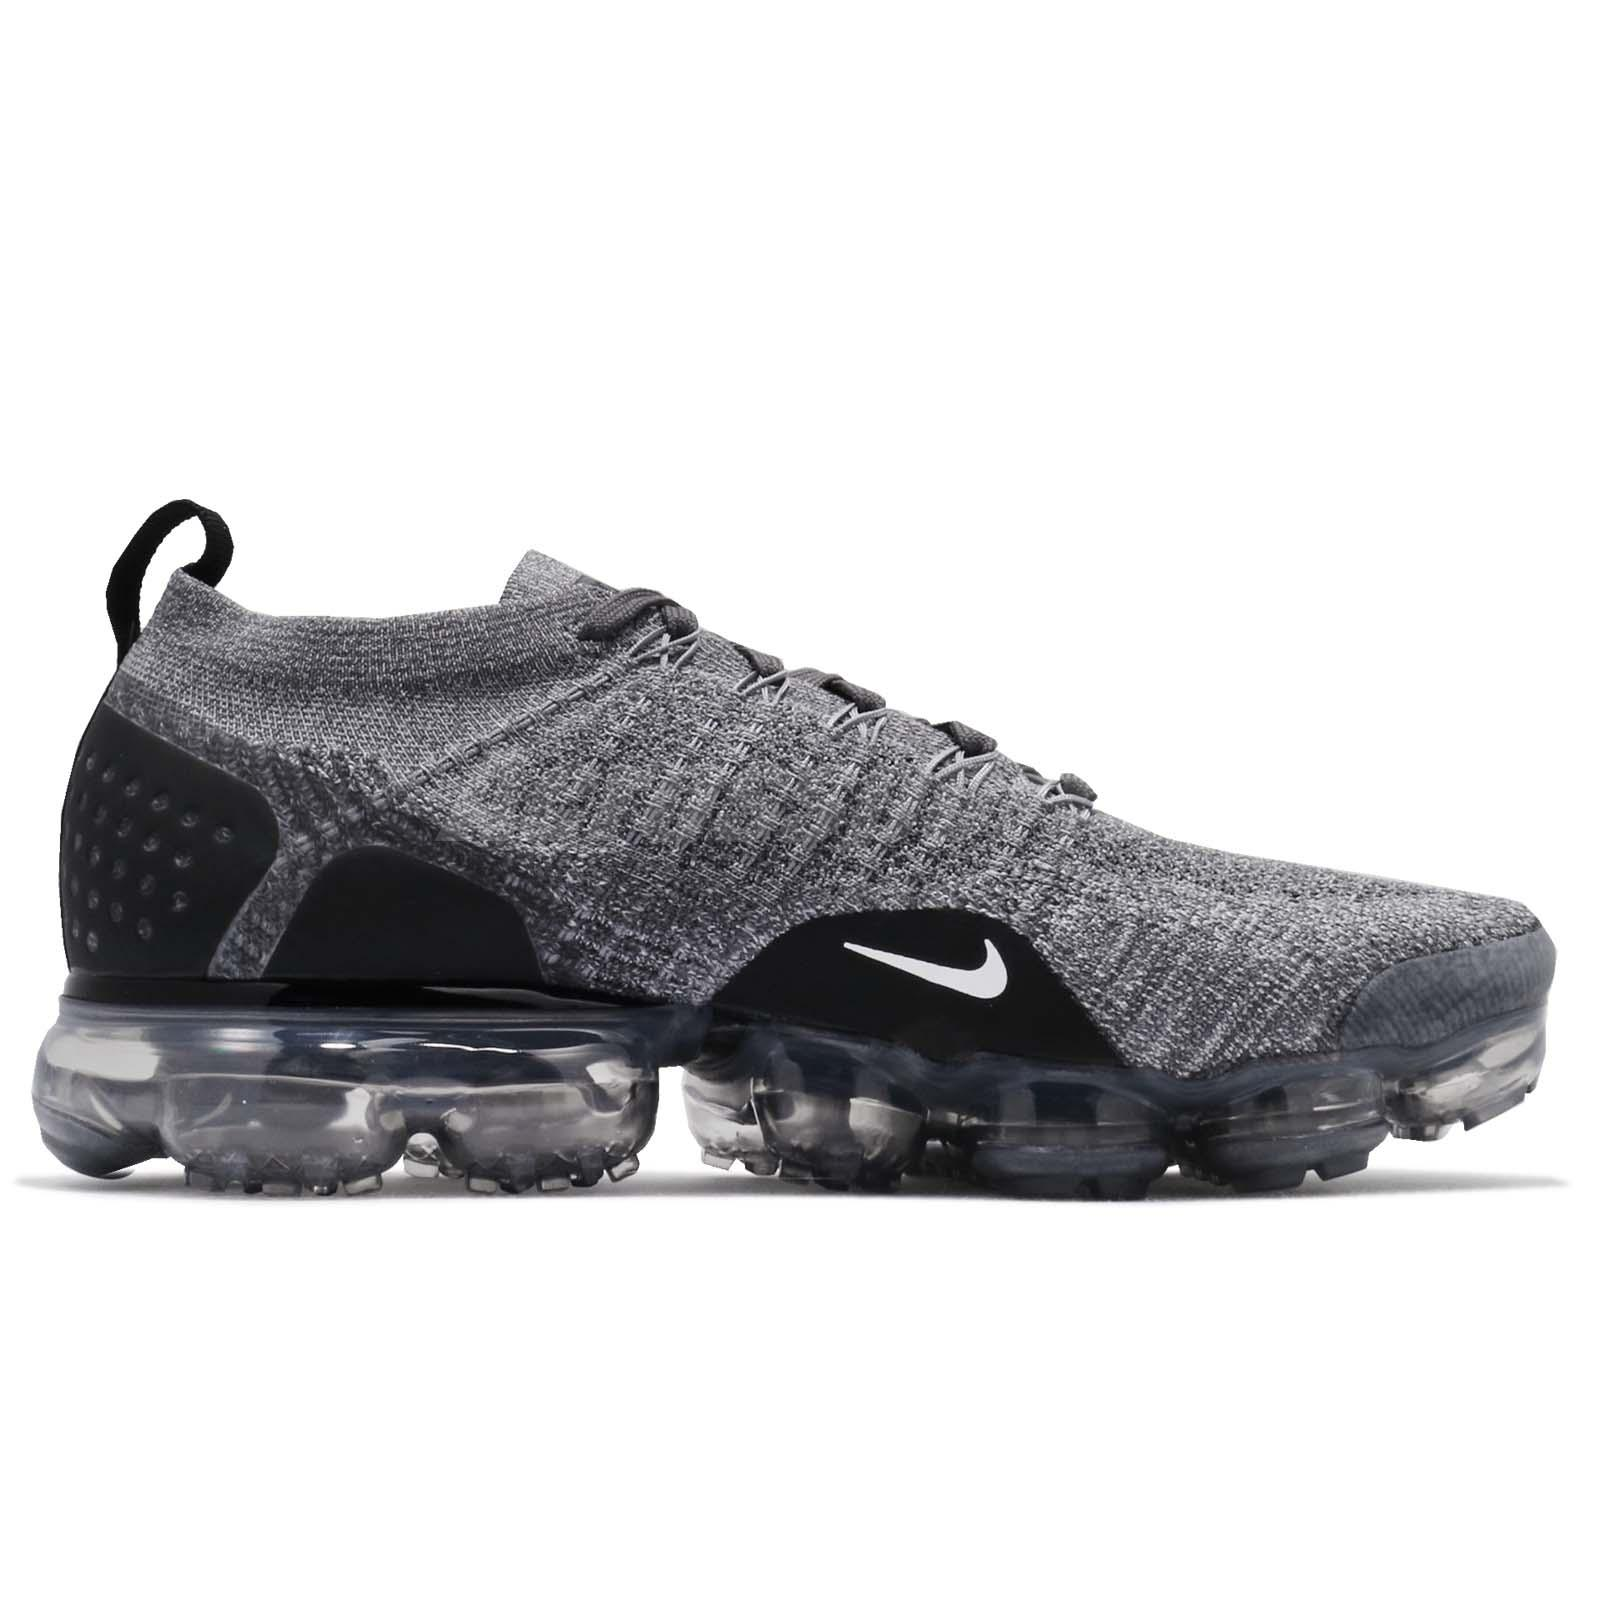 c8e237efc13 Nike Air Vapormax Flyknit 2 II Dark Grey Men Running Shoes Sneakers ...